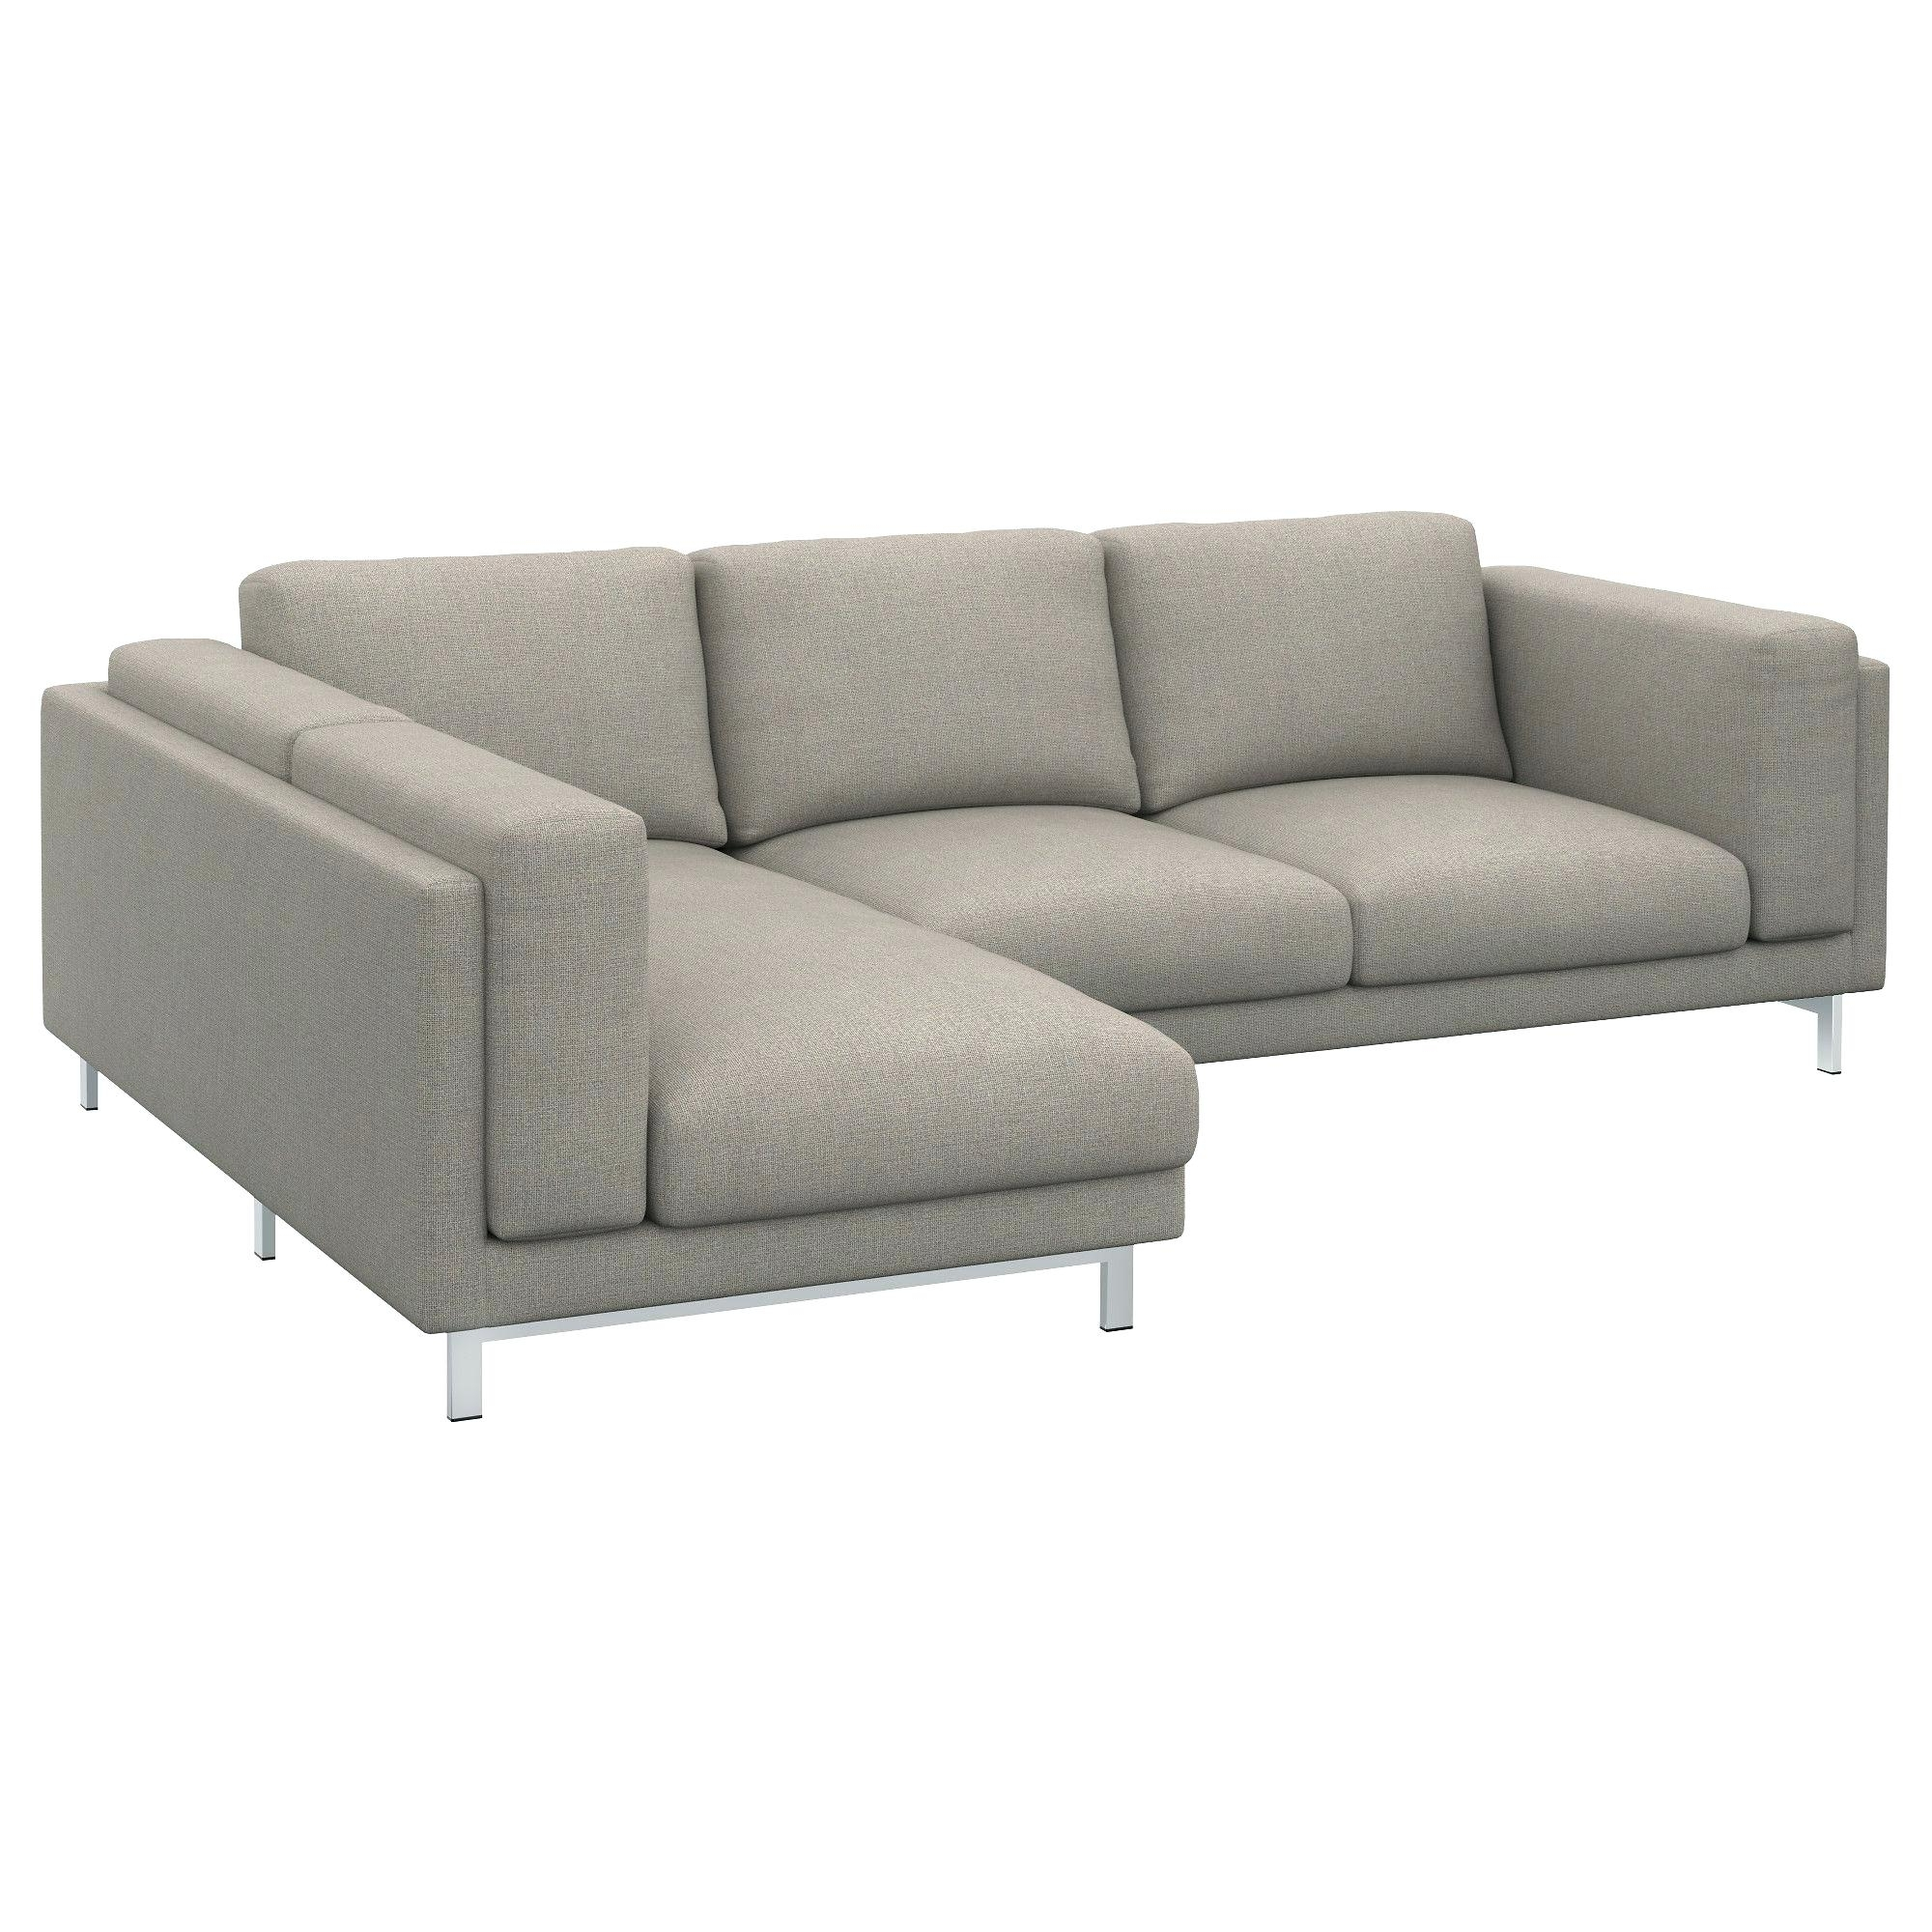 Ikea Karlstad Chaises Pertaining To Well Known Ikea Chaise Nockeby Loveseat With Right Tena Light Gray Chrome (Gallery 13 of 15)